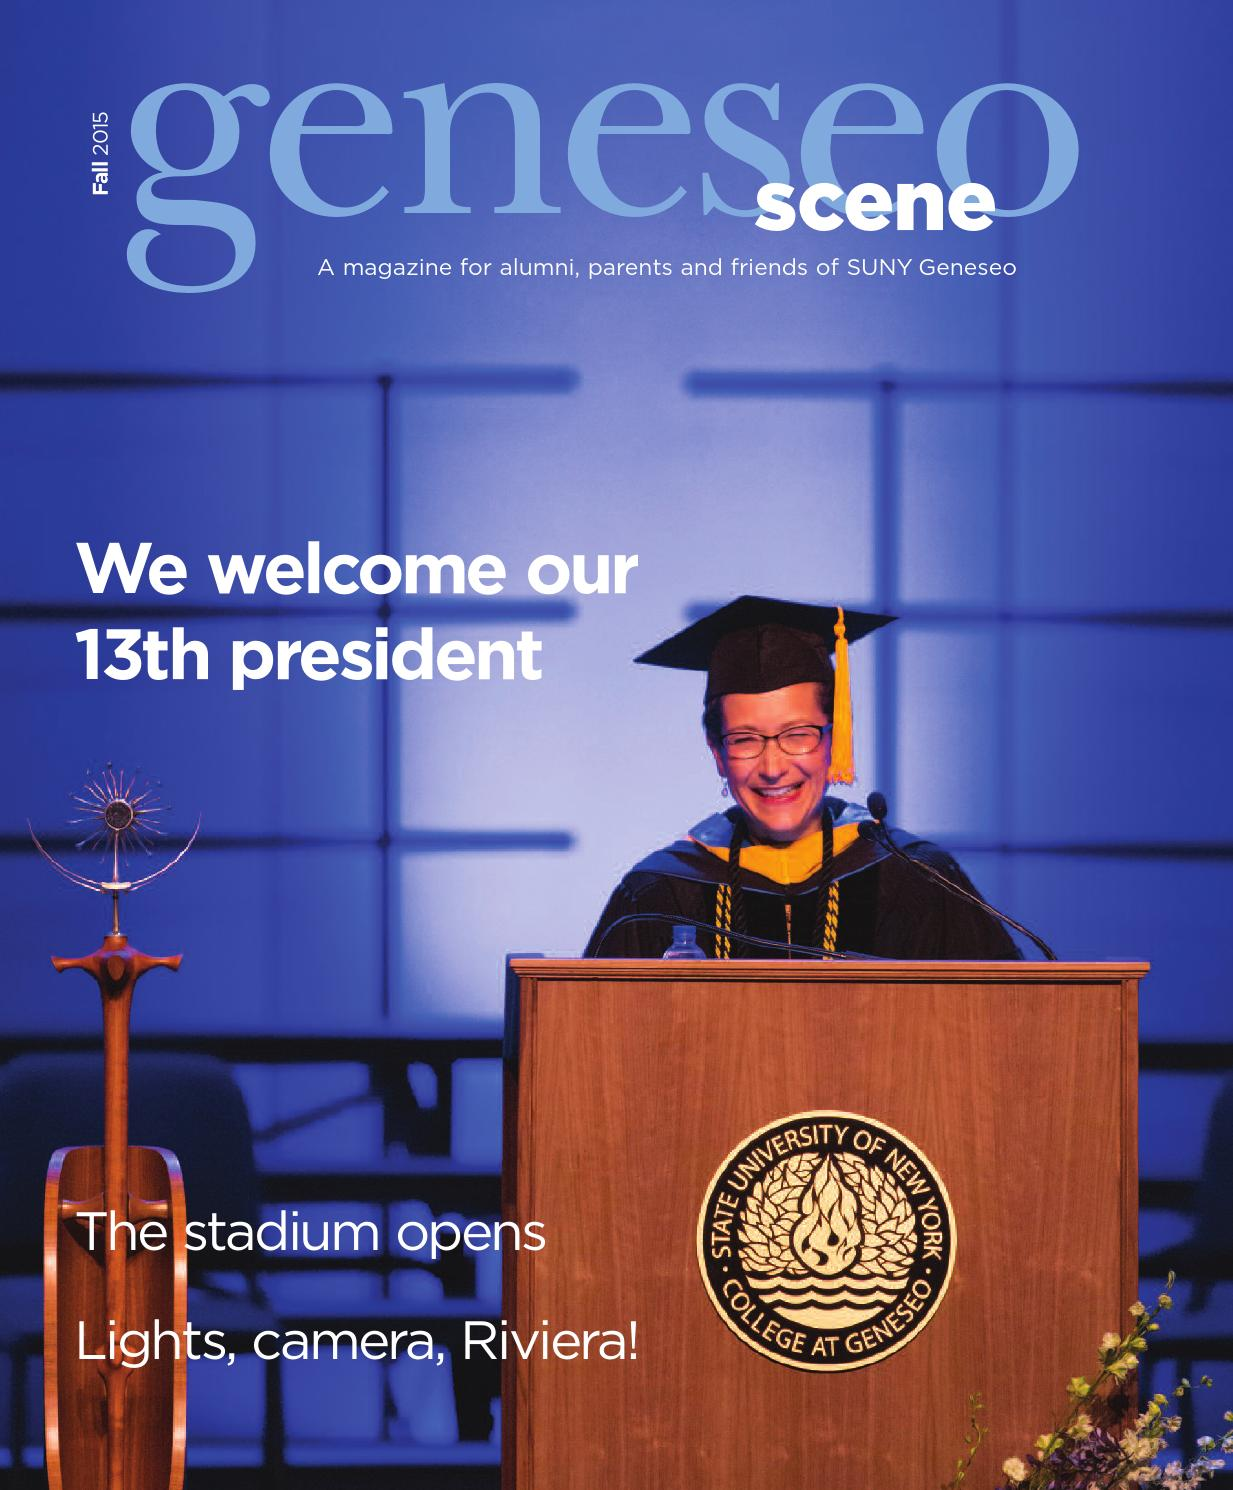 What are my chances to get accepted into SUNY geneseo?